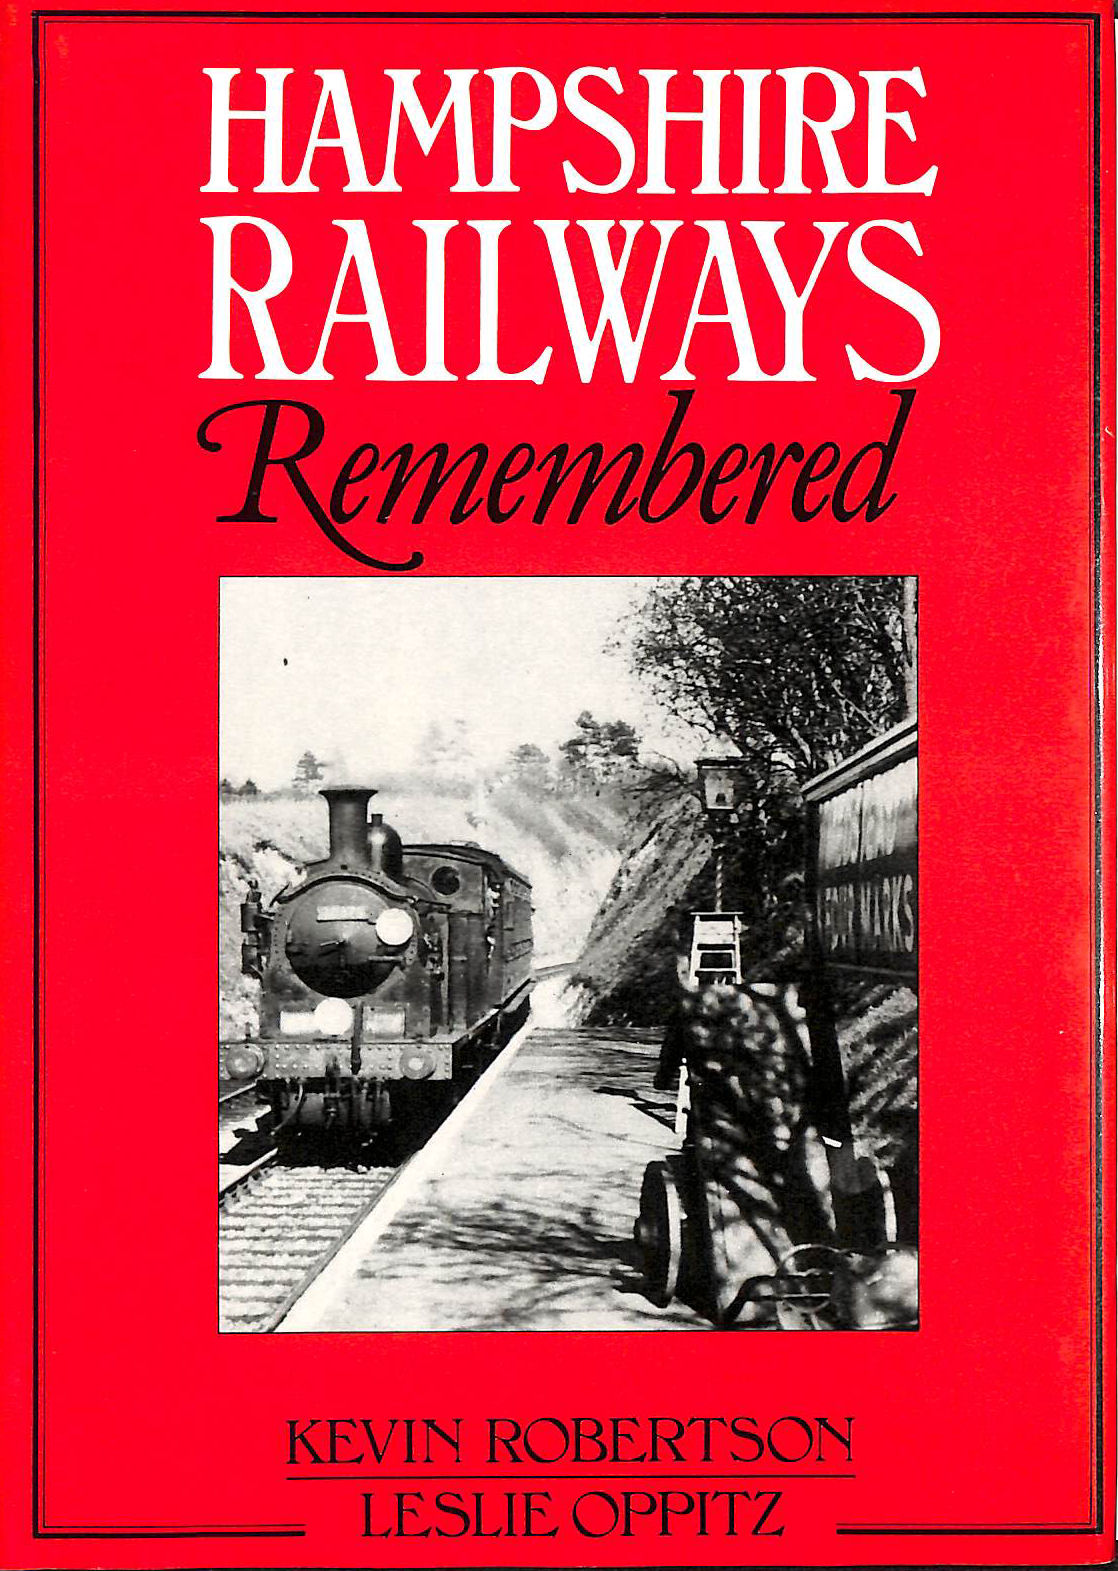 Image for Hampshire Railways Remembered.